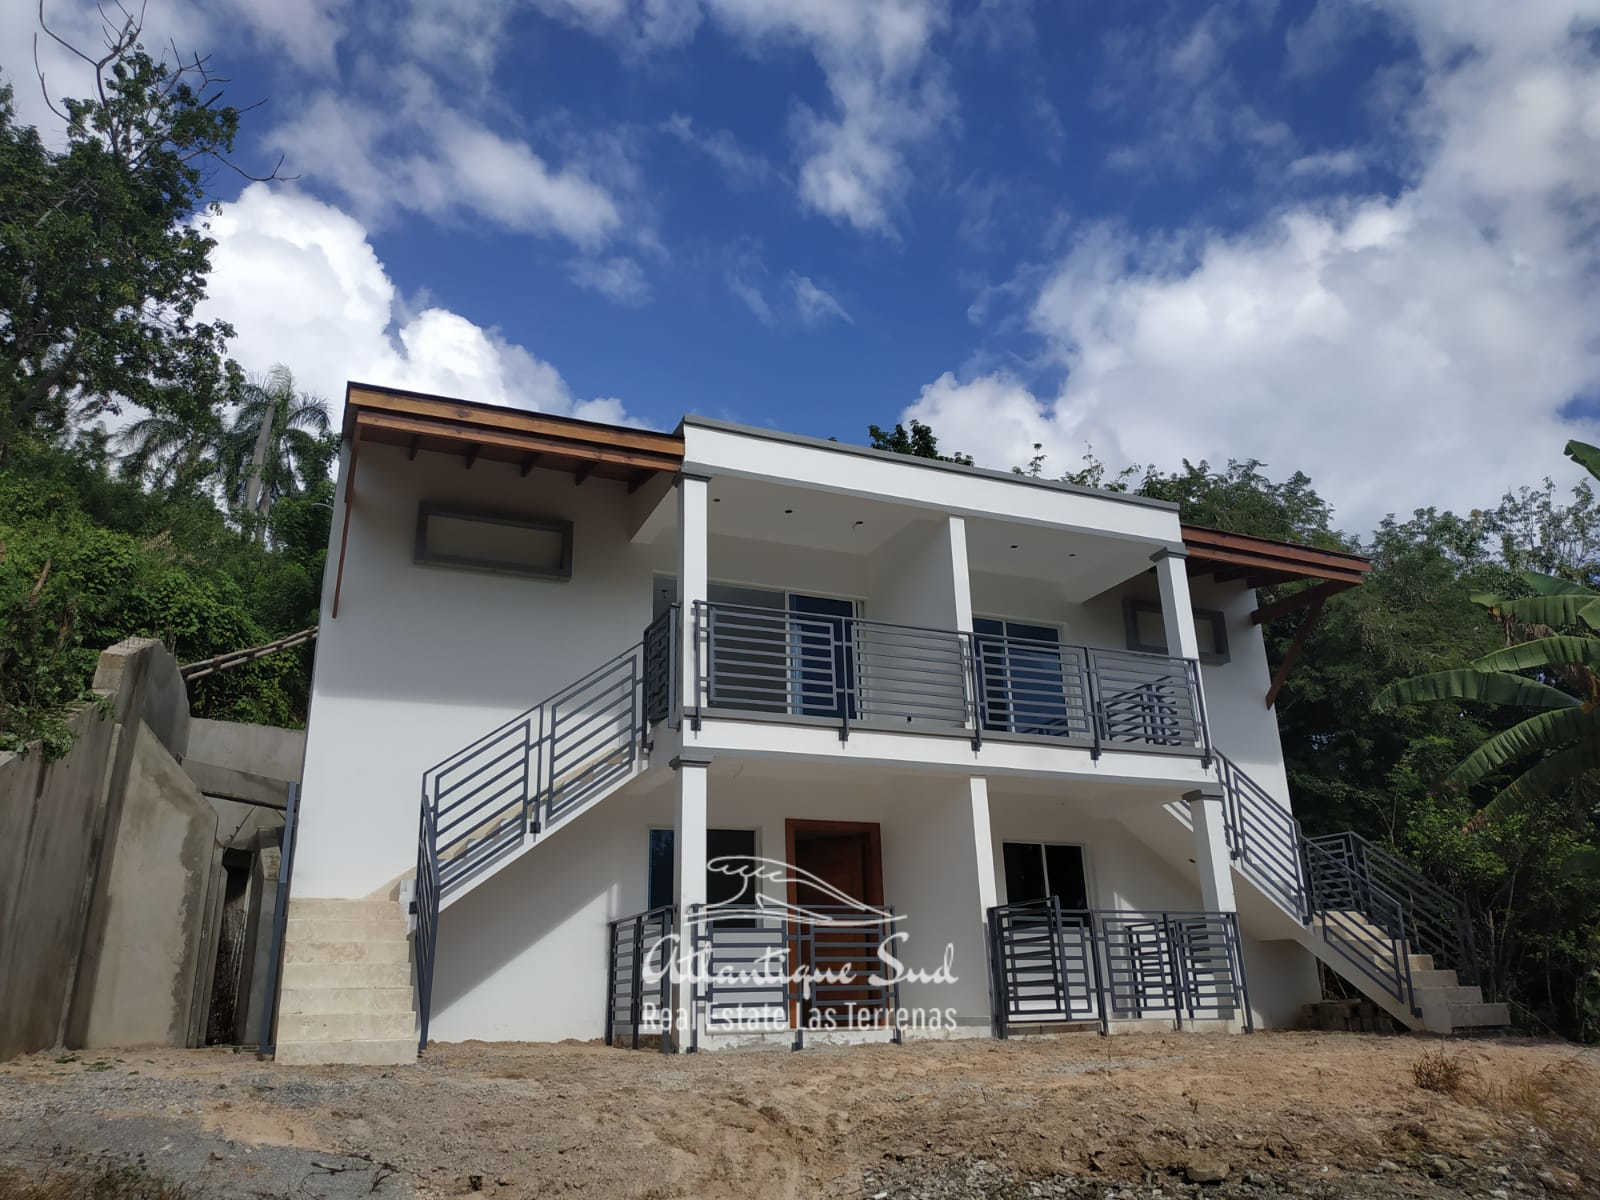 Small condominium for sale Las Terrenas 9.jpg